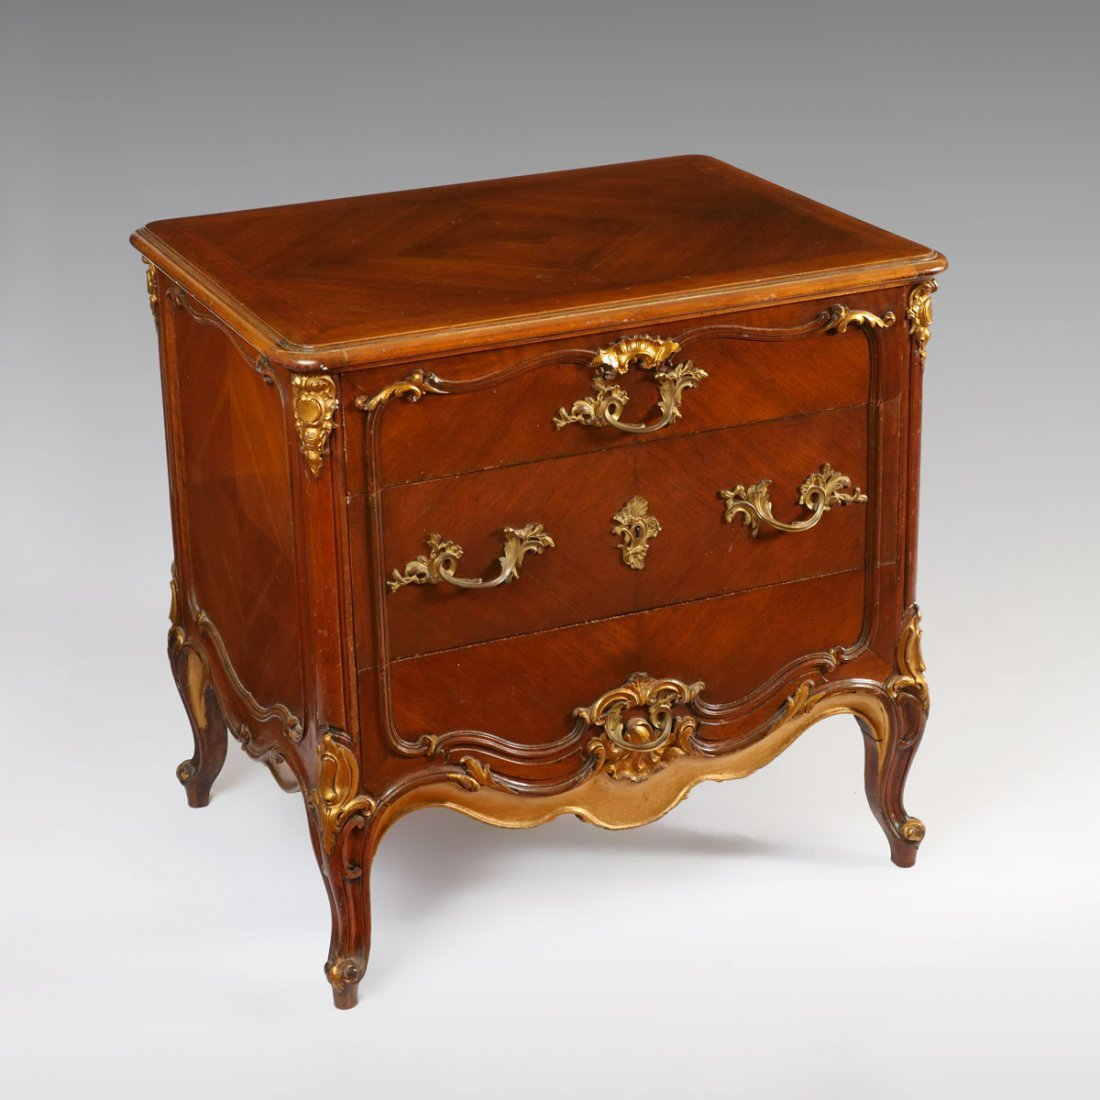 CARVED 3 DOOR FRENCH ORMOLU CHEST